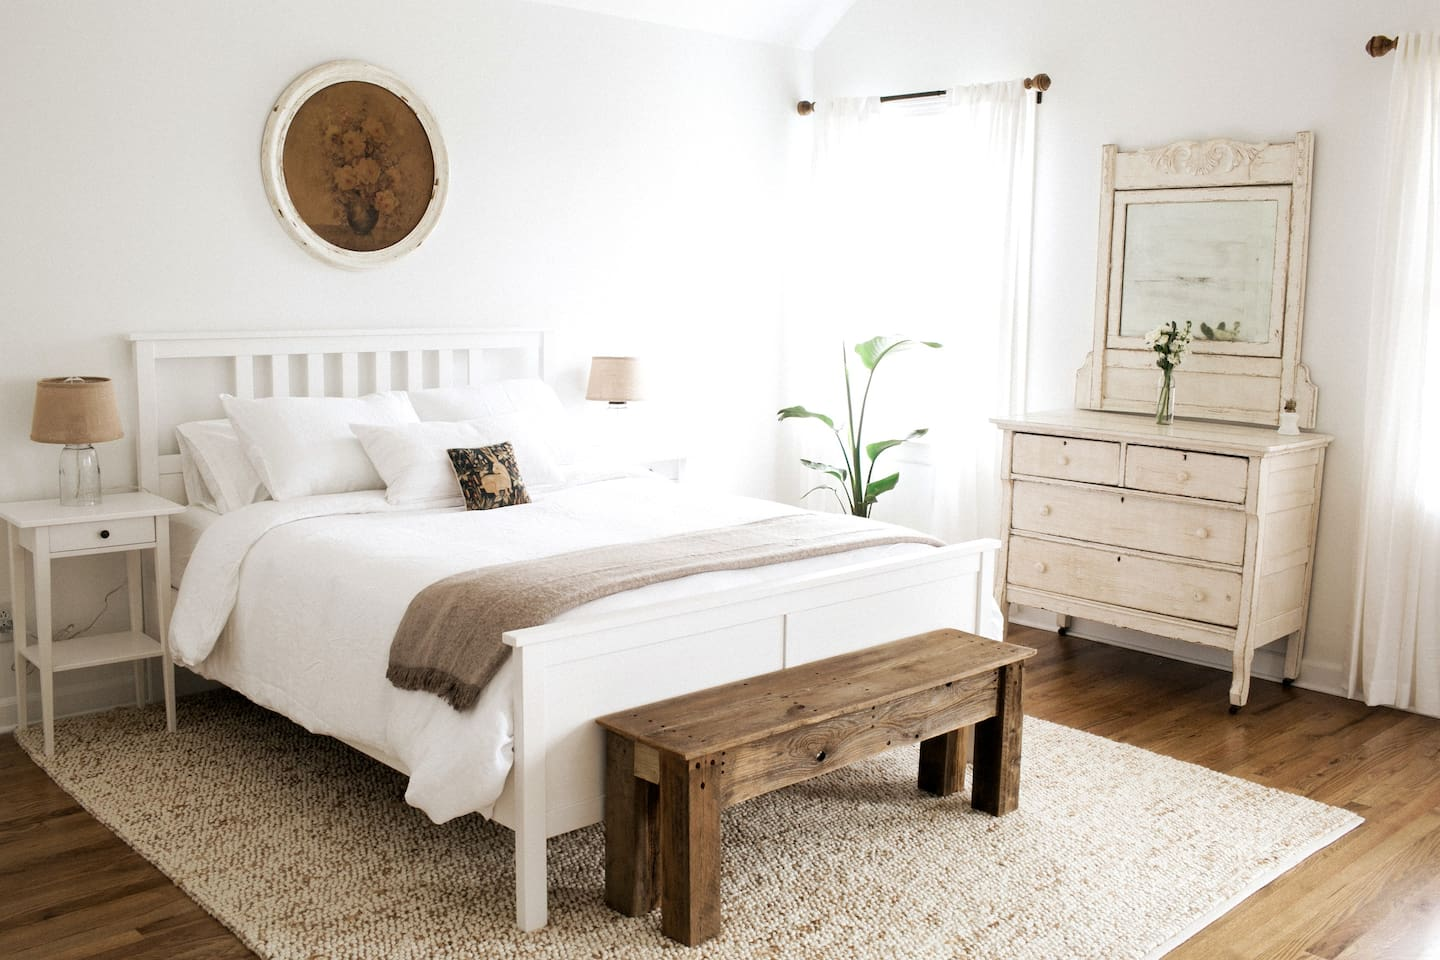 You'll never want to leave this comfy bed!